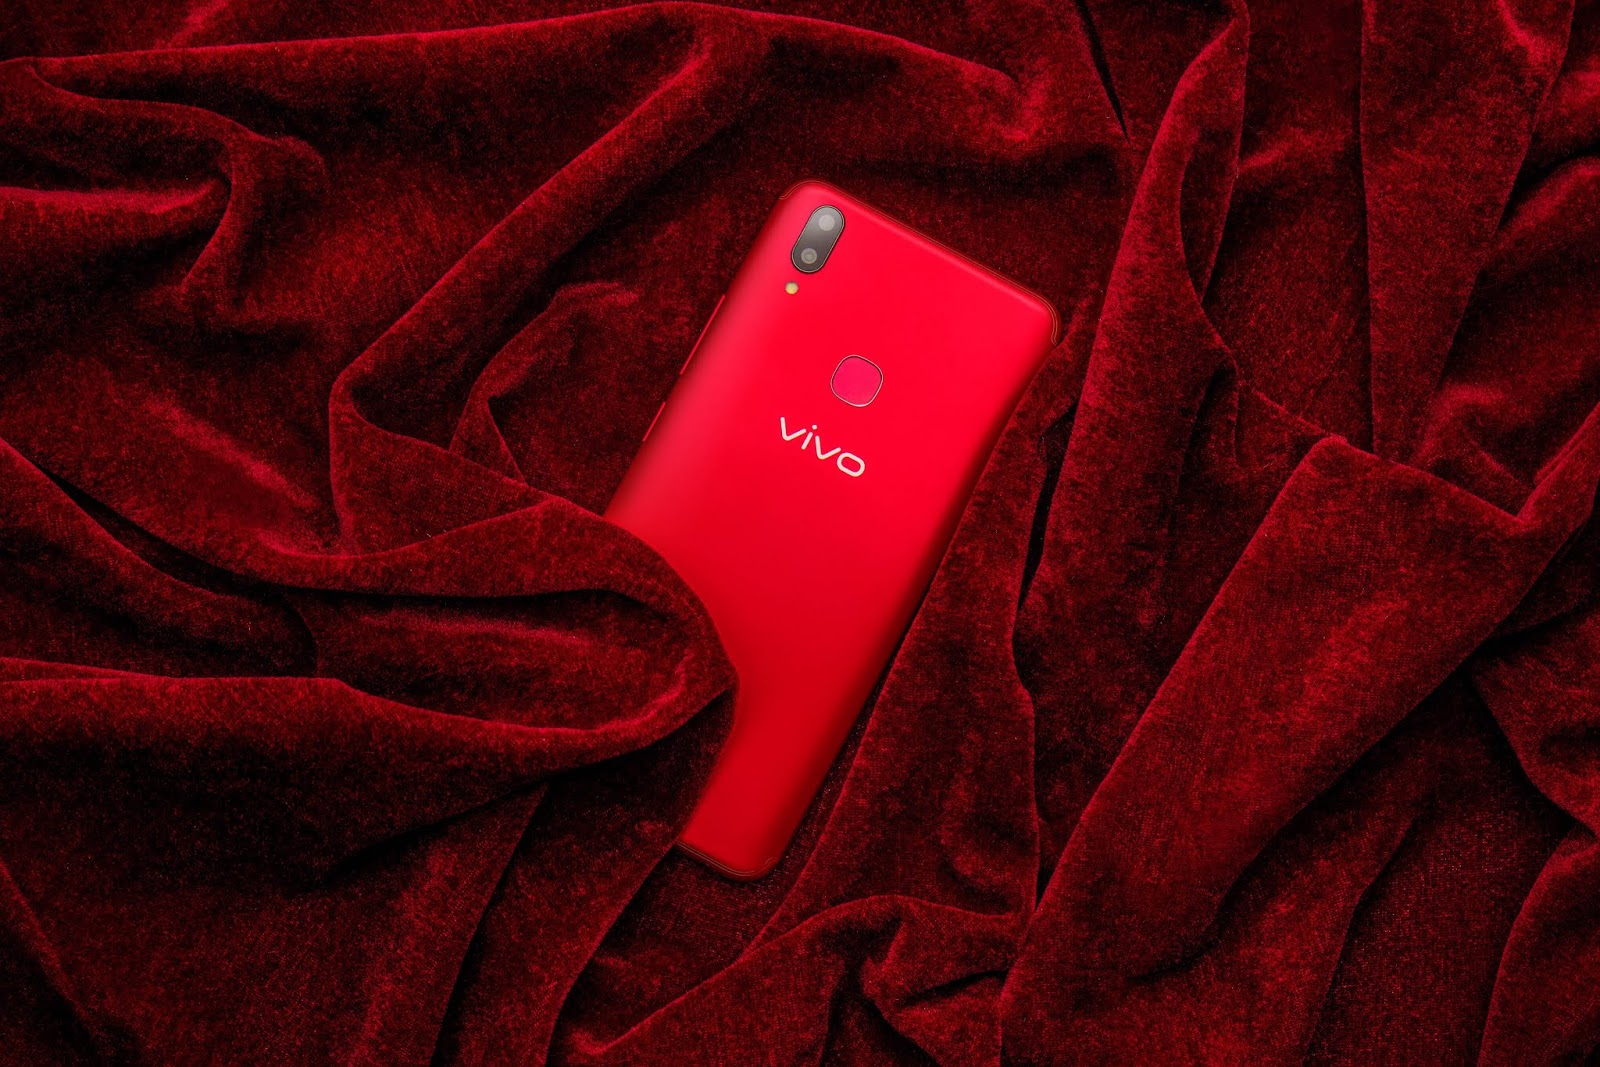 a633439b82b Vivo Philippines Vice President for Sales Hazel Bascon explained that the  Velvet Red represents the youthful vibe of the global smartphone brand.